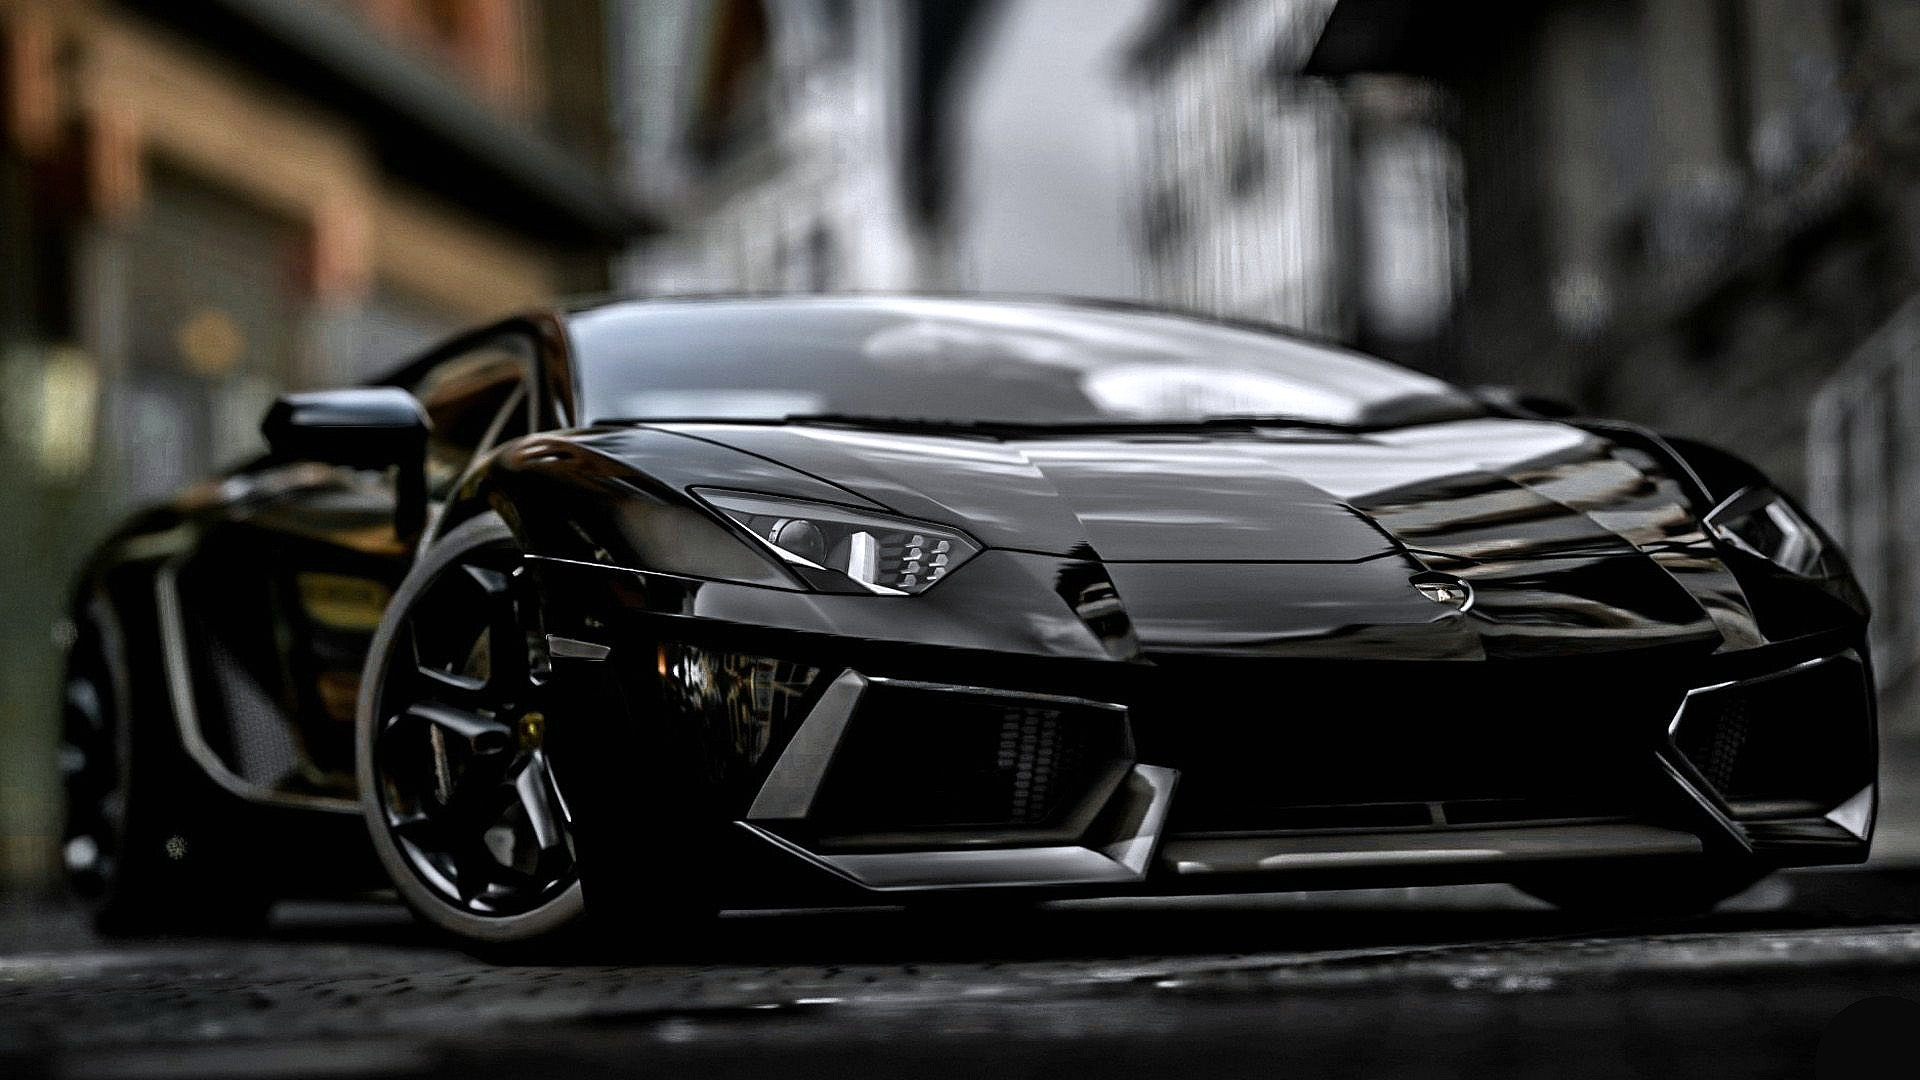 Lamborghini HD Wallpapers 1080p Download